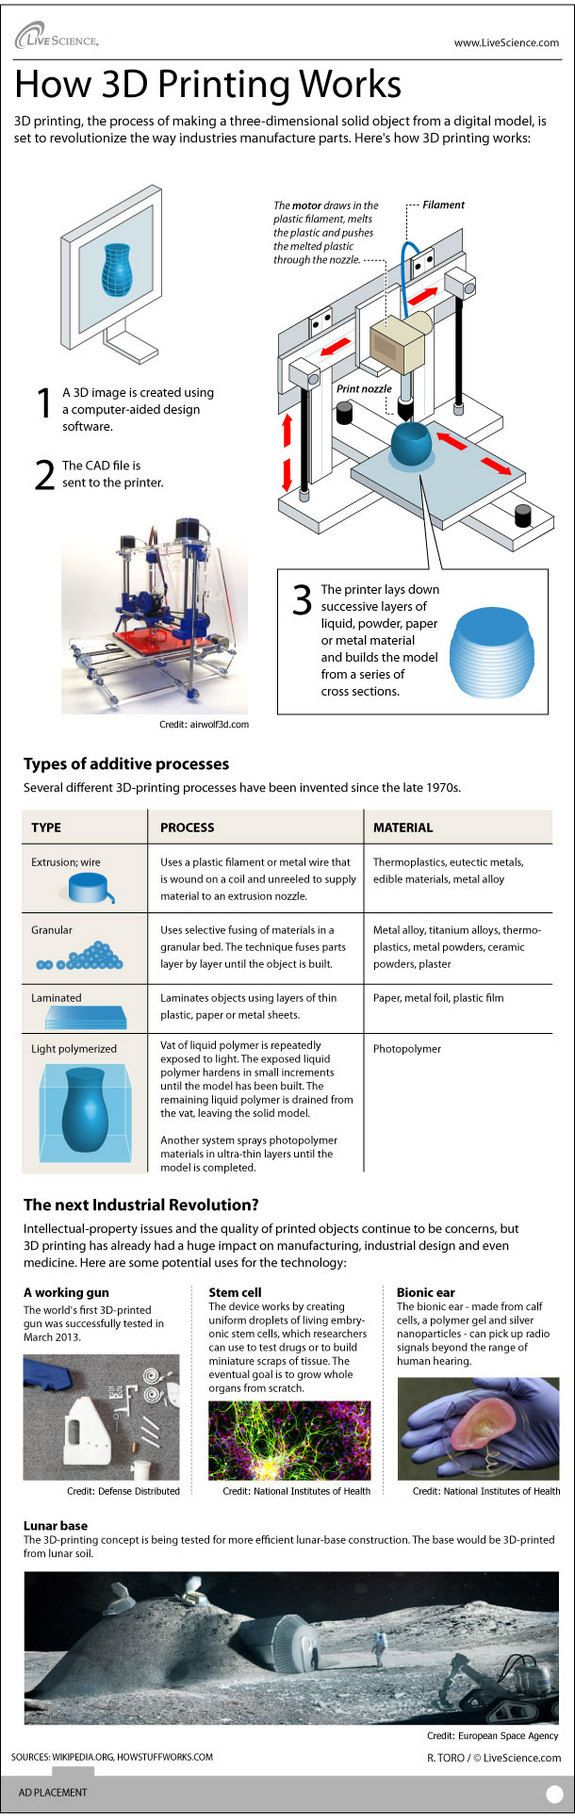 How 3D printing works - infographic